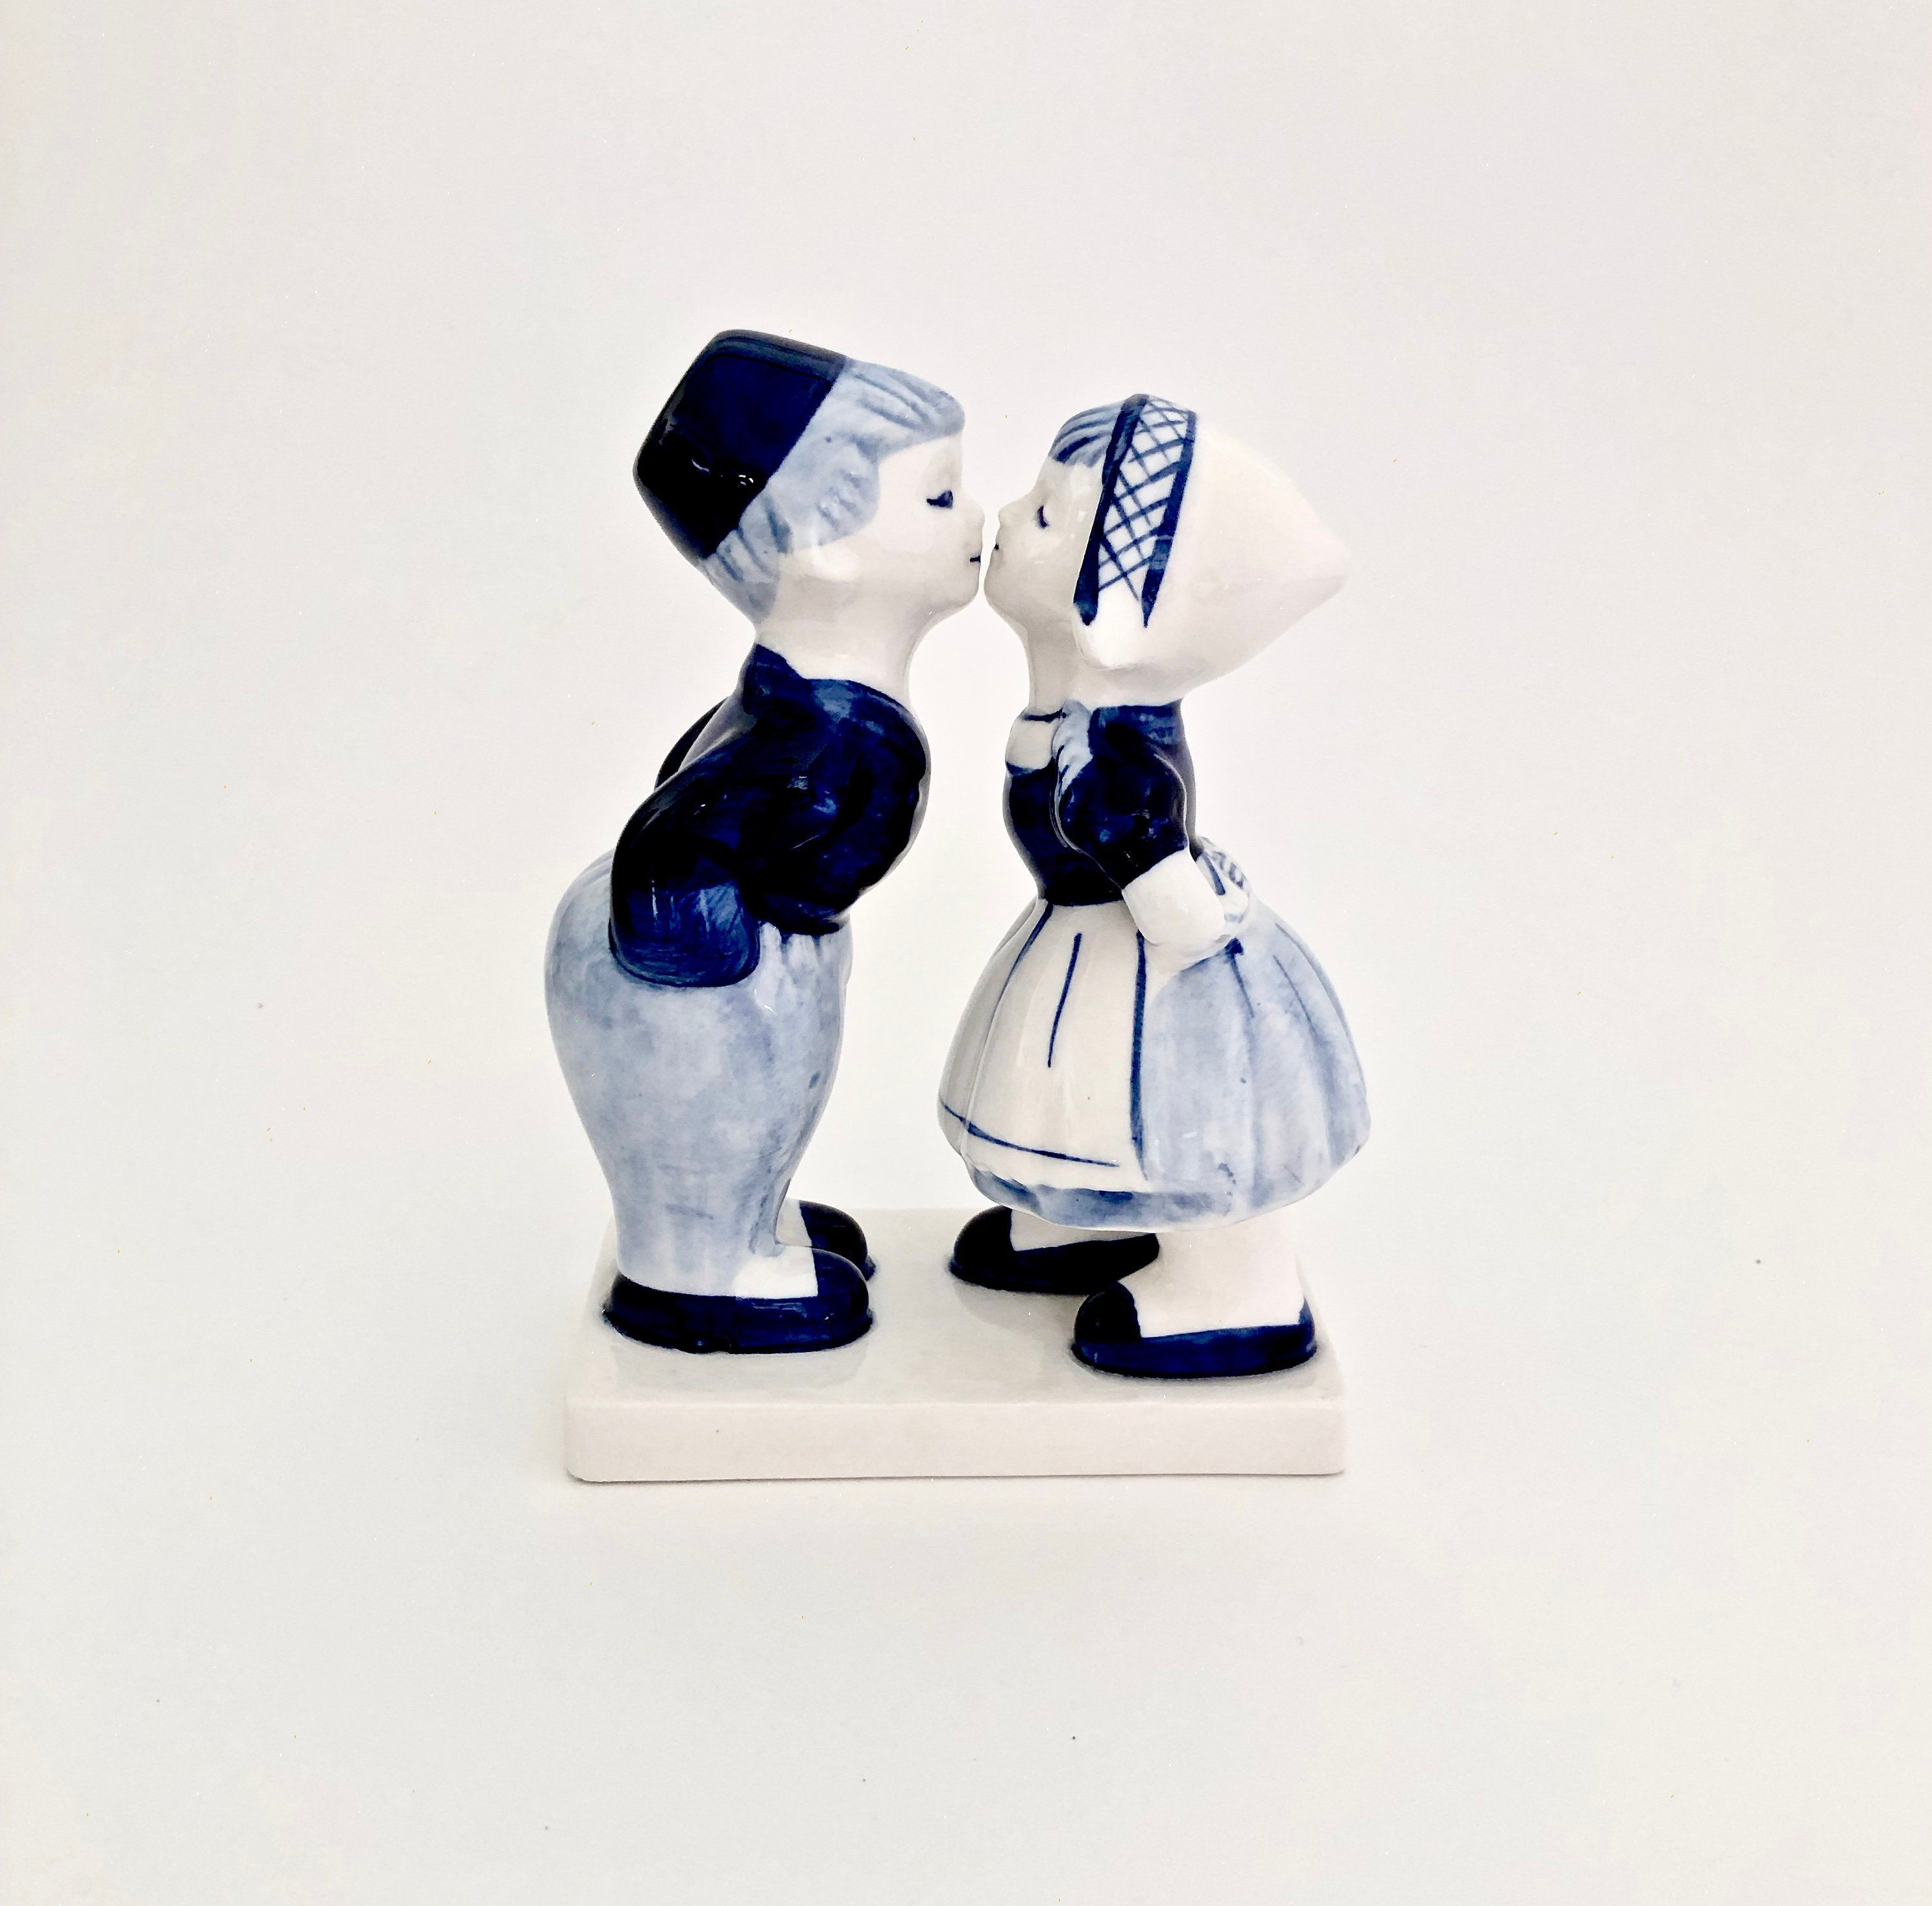 18th Wedding Anniversary Gift Ideas For Her: Delft Kissing Dutch Couple Figurine